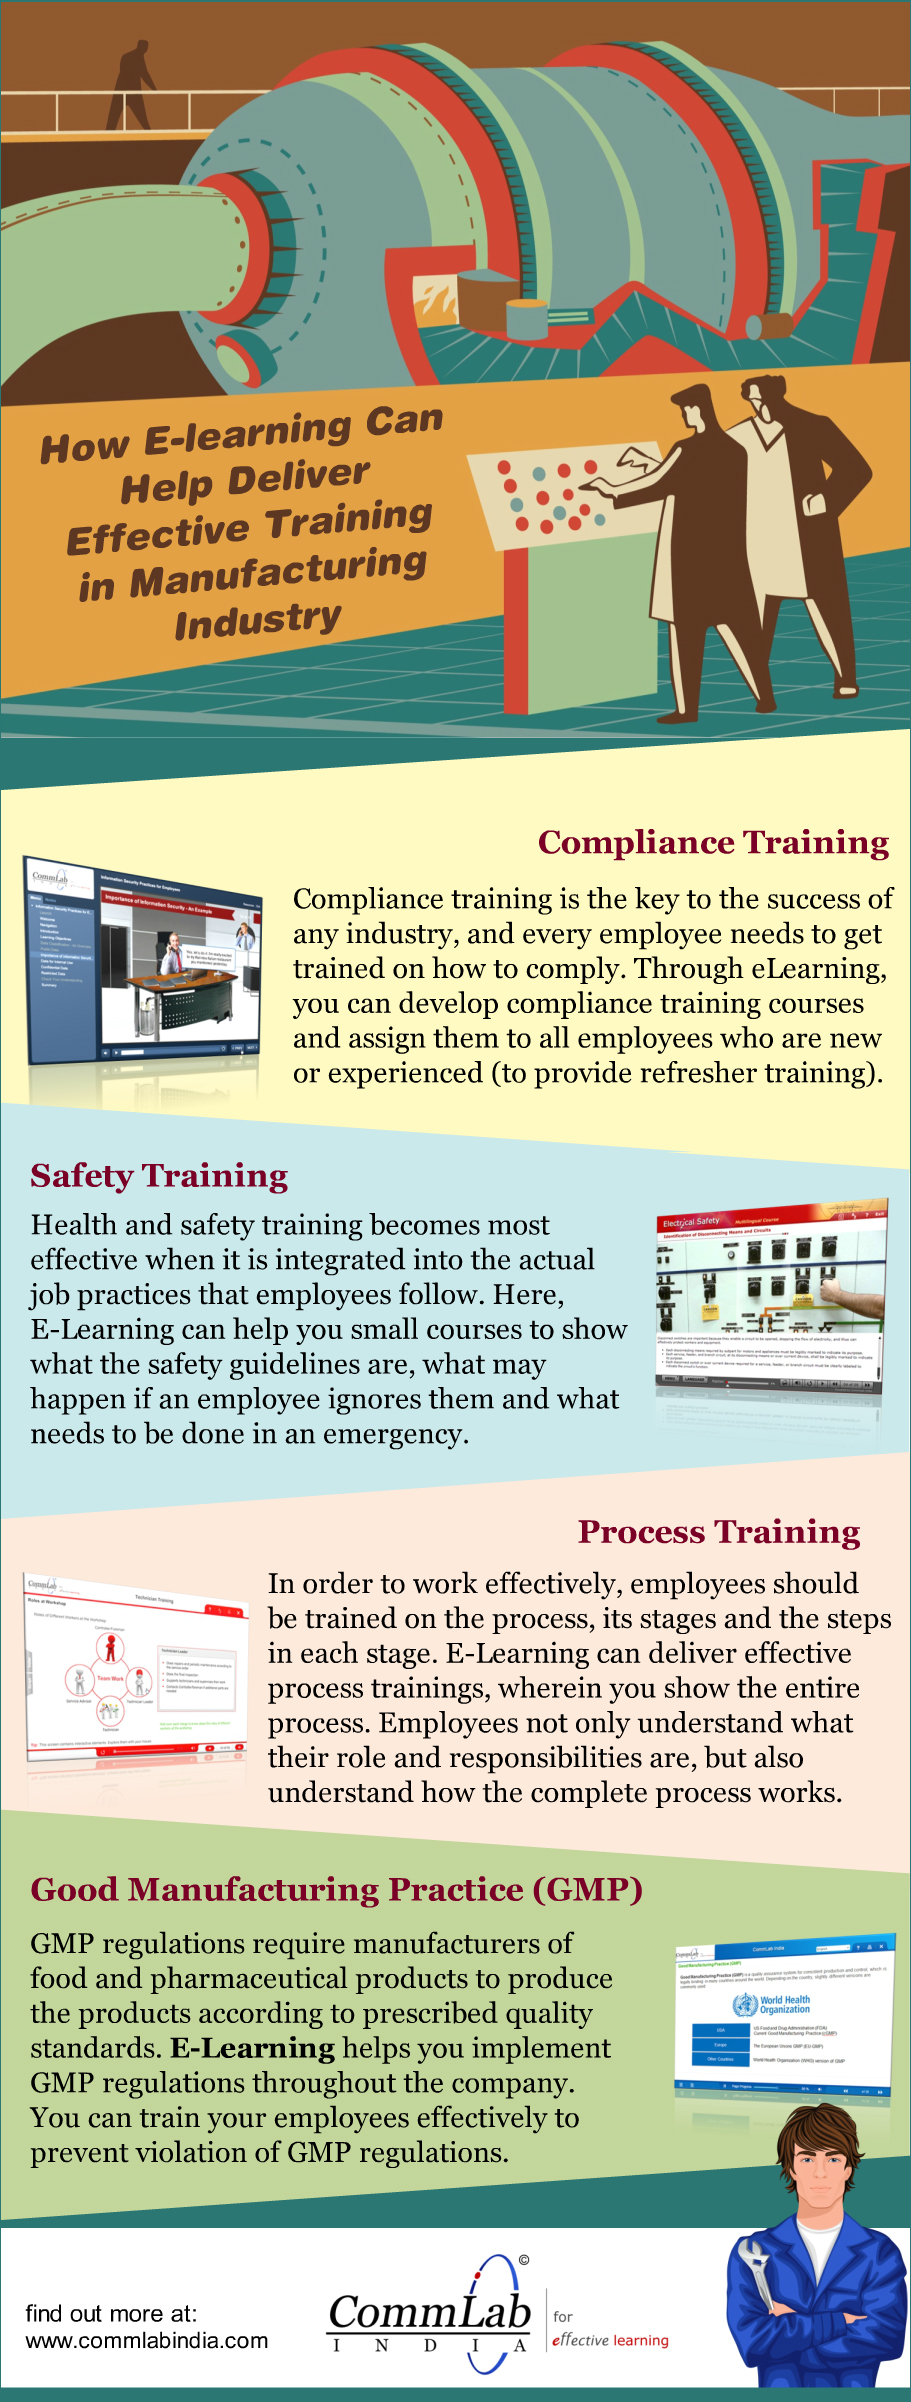 E-learning in the Manufacturing Sector – Imparting Excellent Training – An Infographic